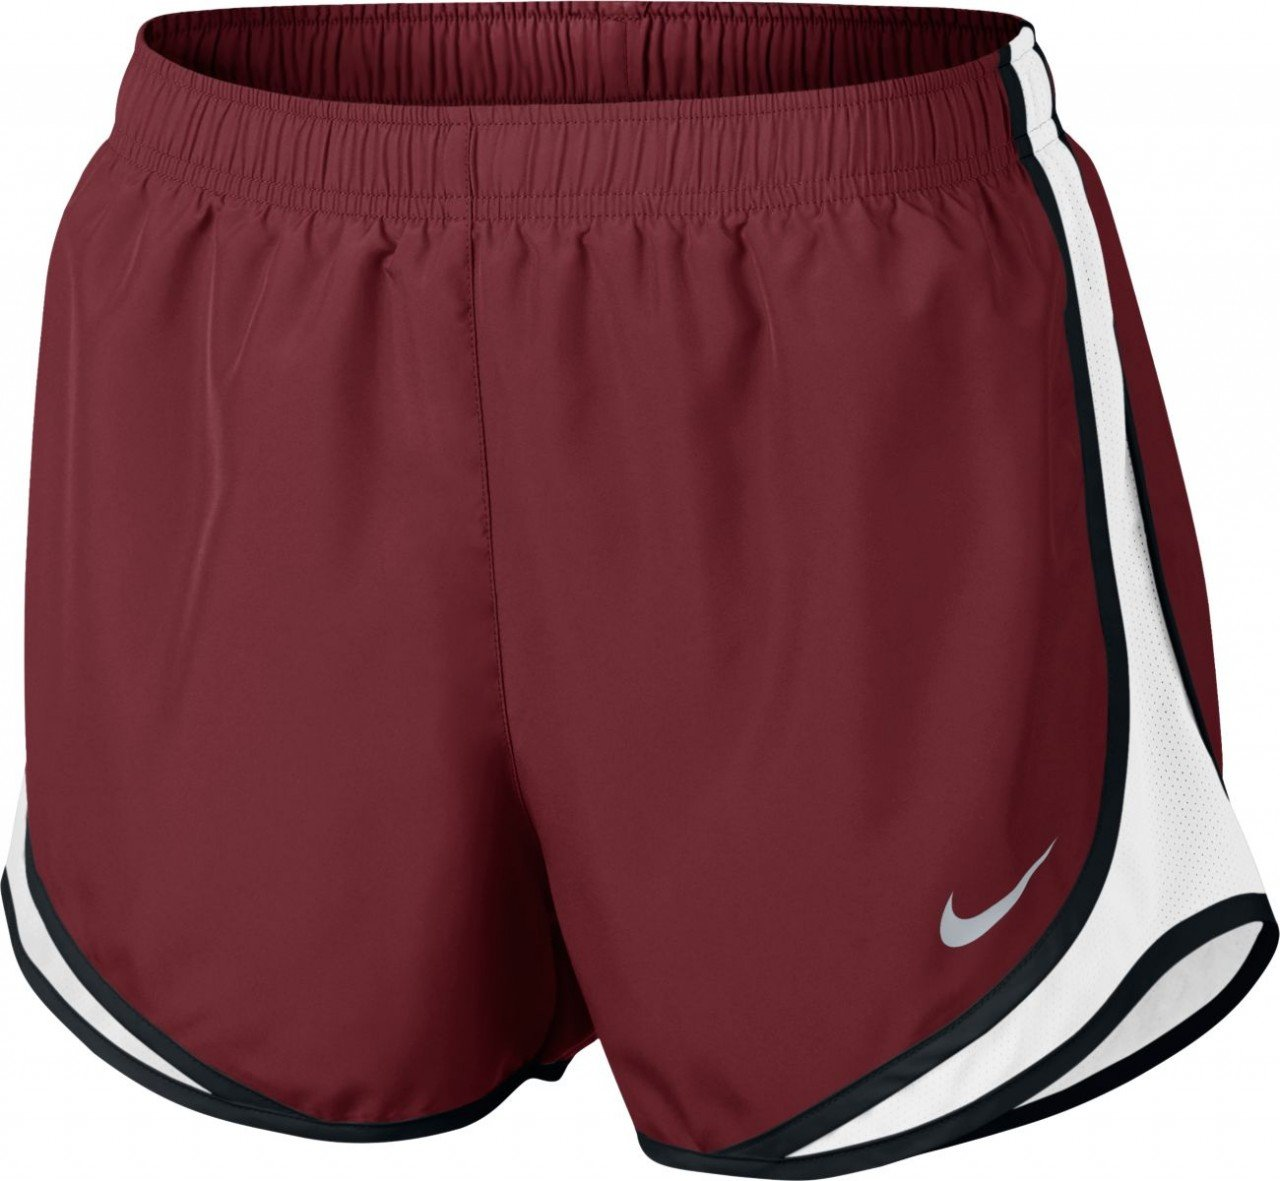 NIKE Dry Fit Tempo Shorts (Black/Team Red & White, XS)